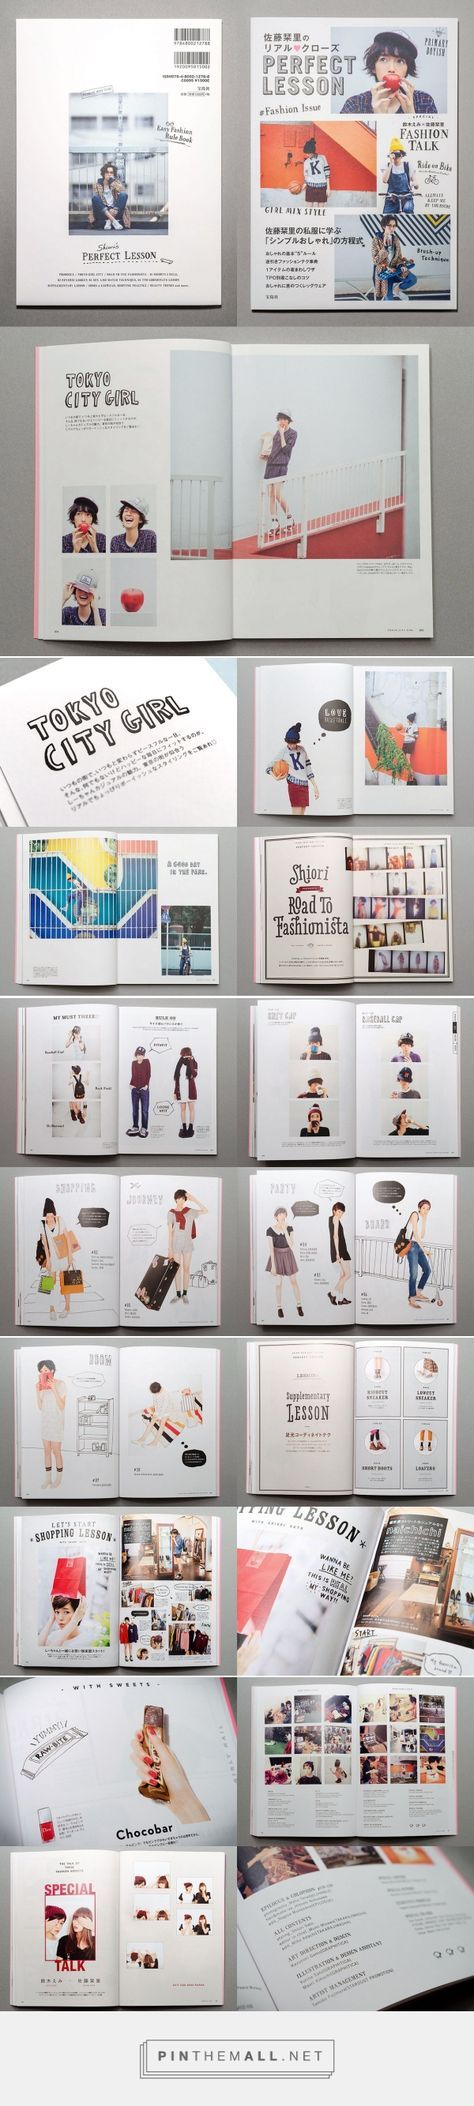 32 Ideas Travel Book Cover Design Typography Magazine Layout Design Fashion Editorial Layout Book Design